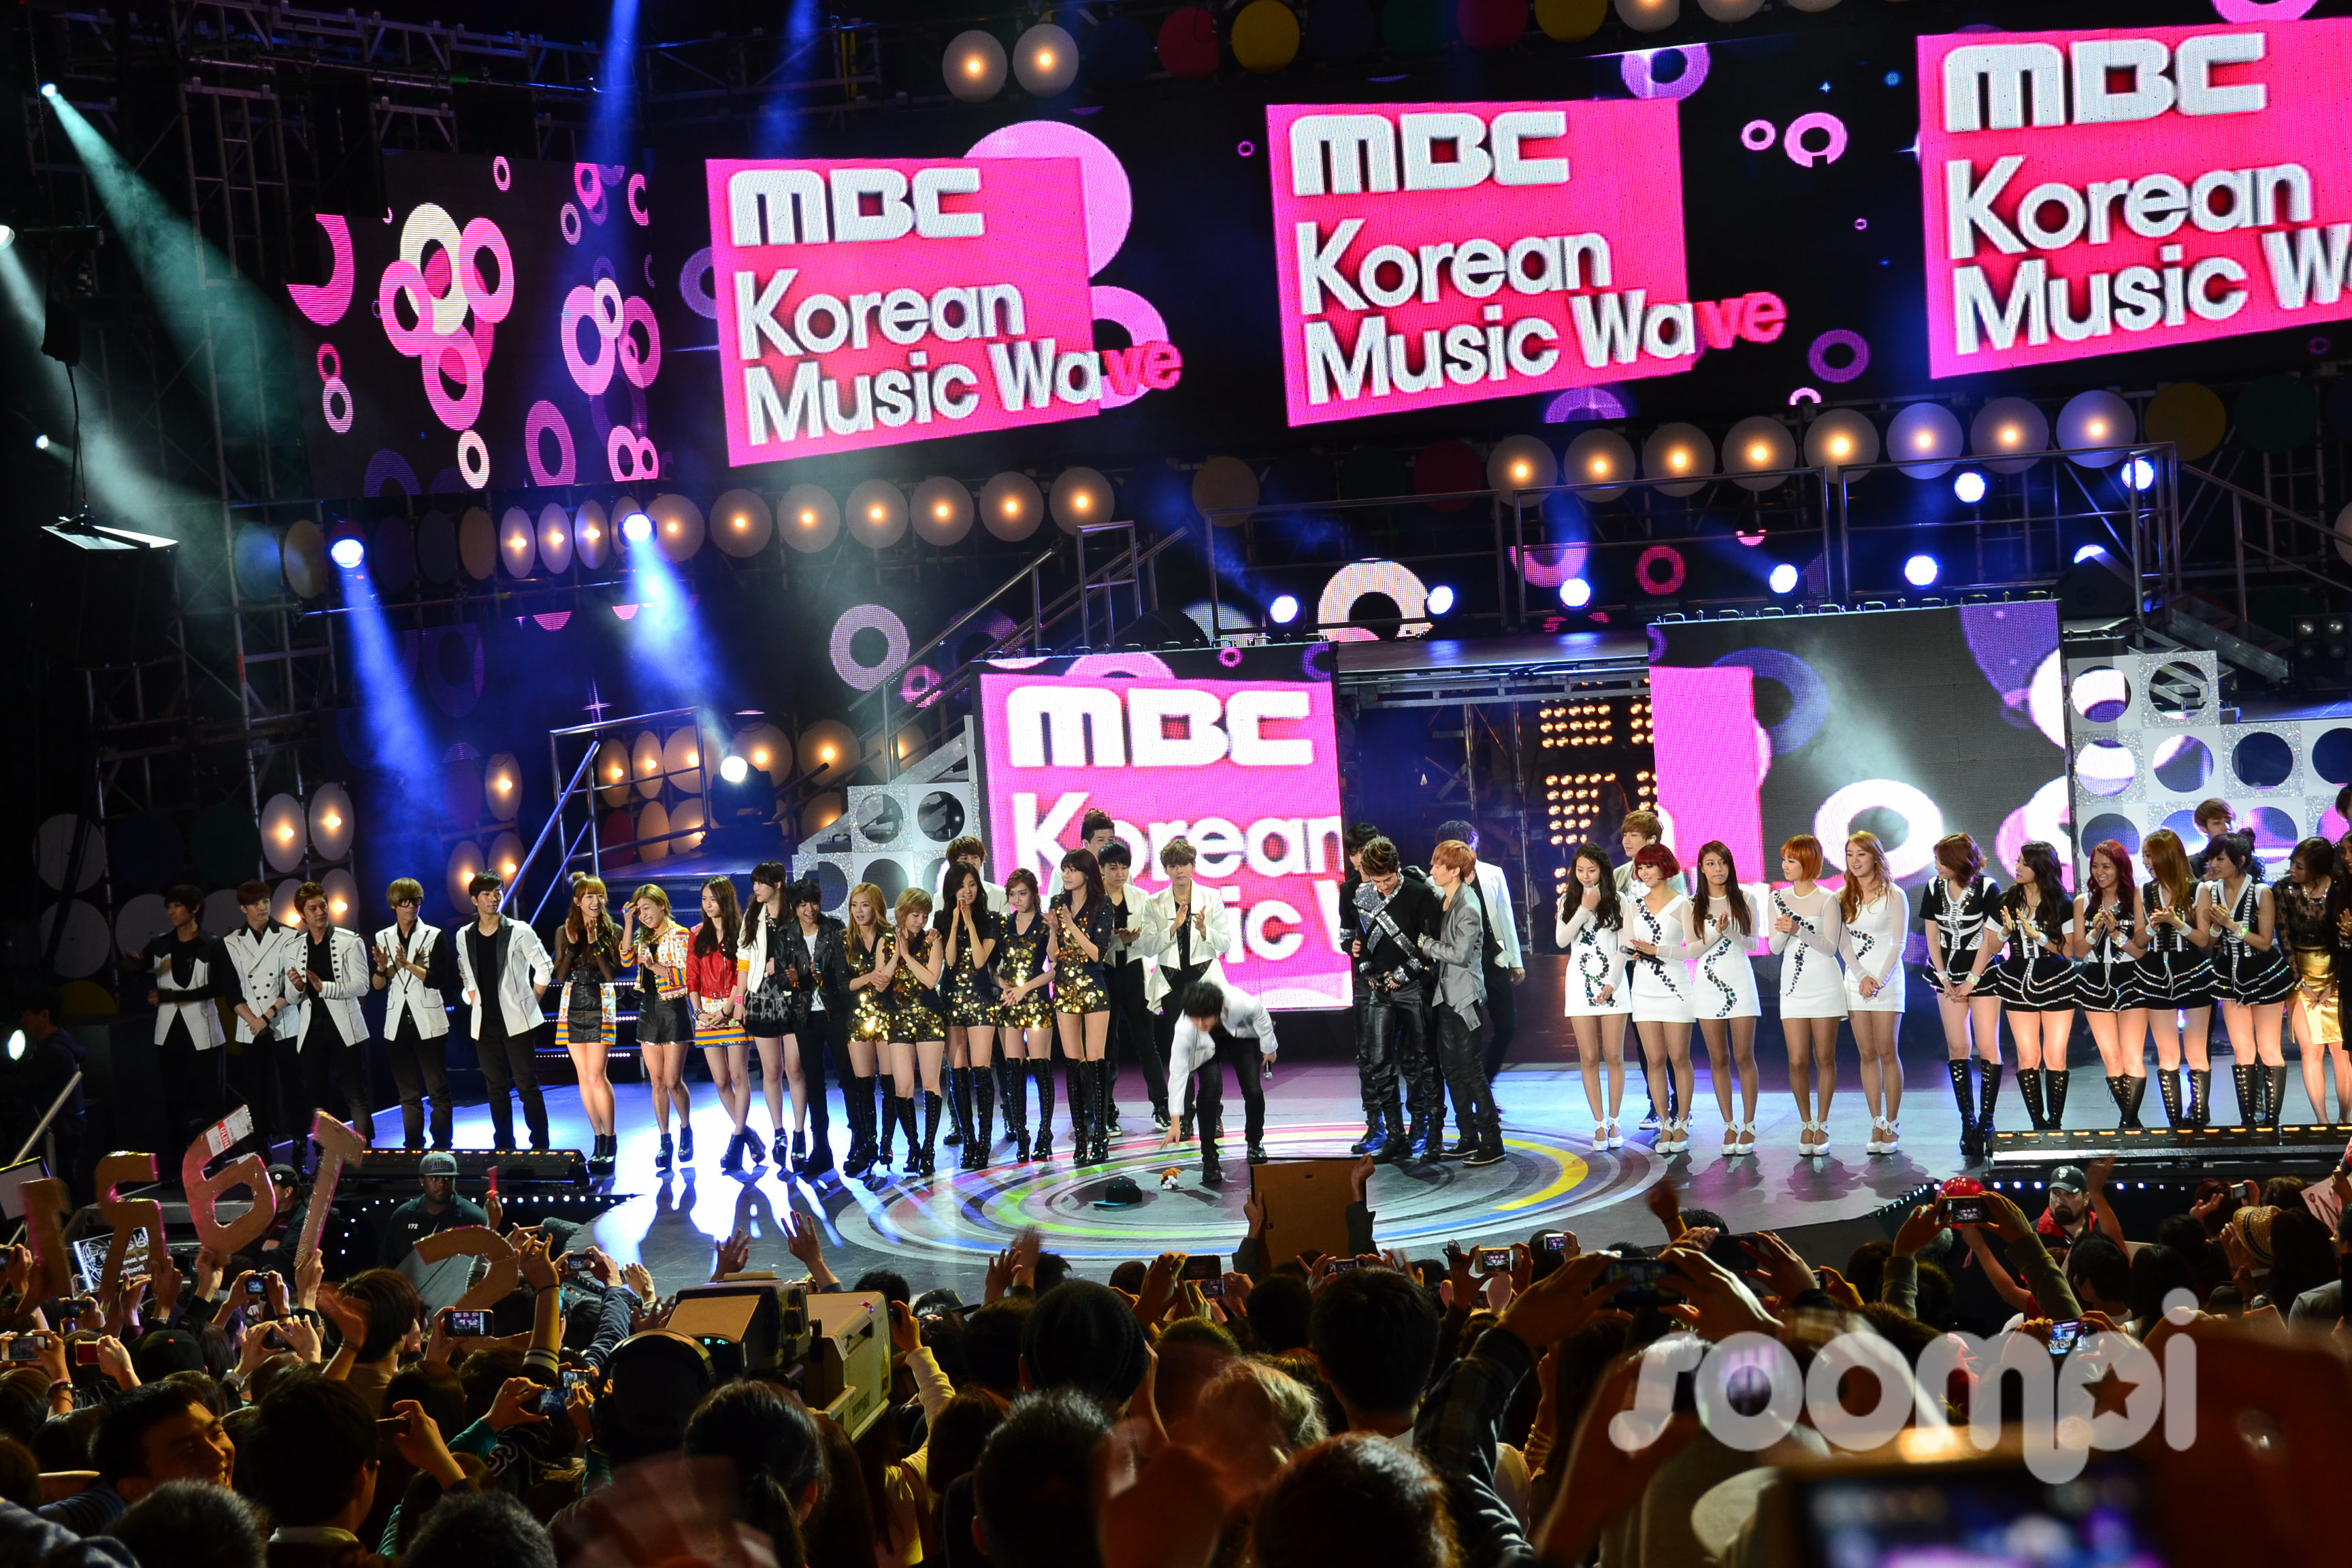 [Concert Review] MBC Korean Music Wave in Google